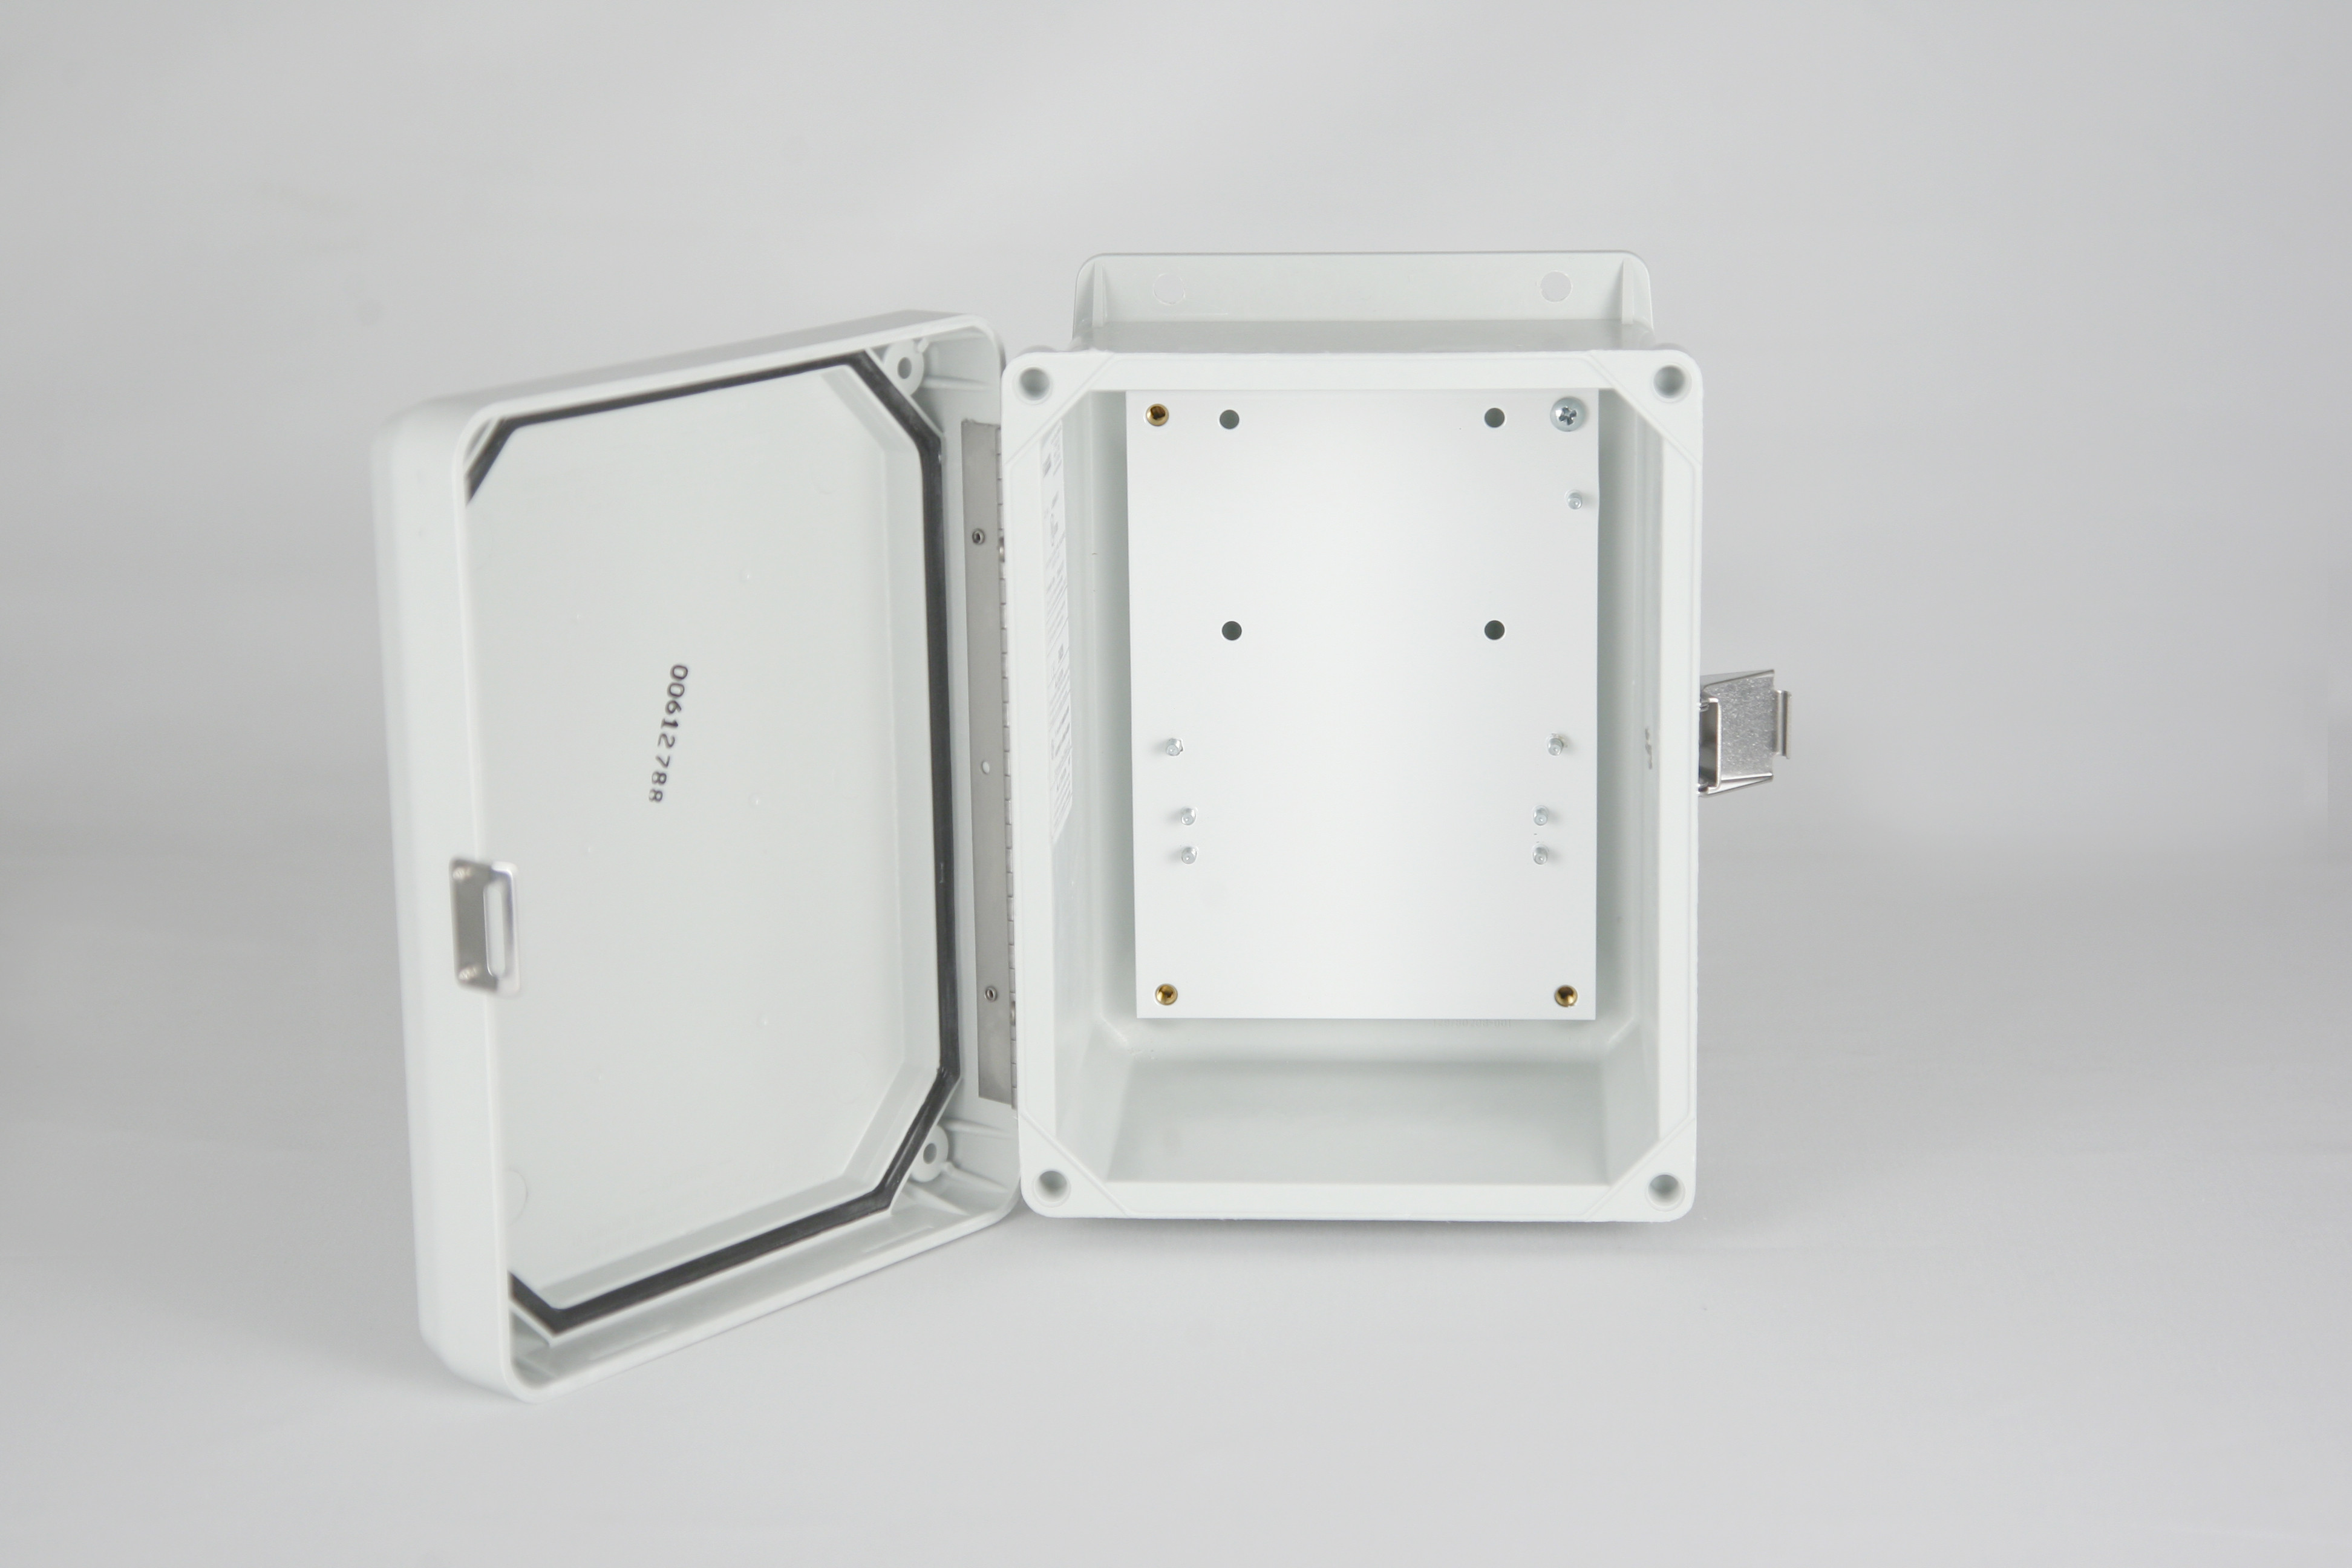 """Wall Mount Enclosure - NEMA 4X Weather Proof Enclosure (8""""H x 6""""W x 4""""D) - Gray - w/ Back Plate - UL LISTED"""